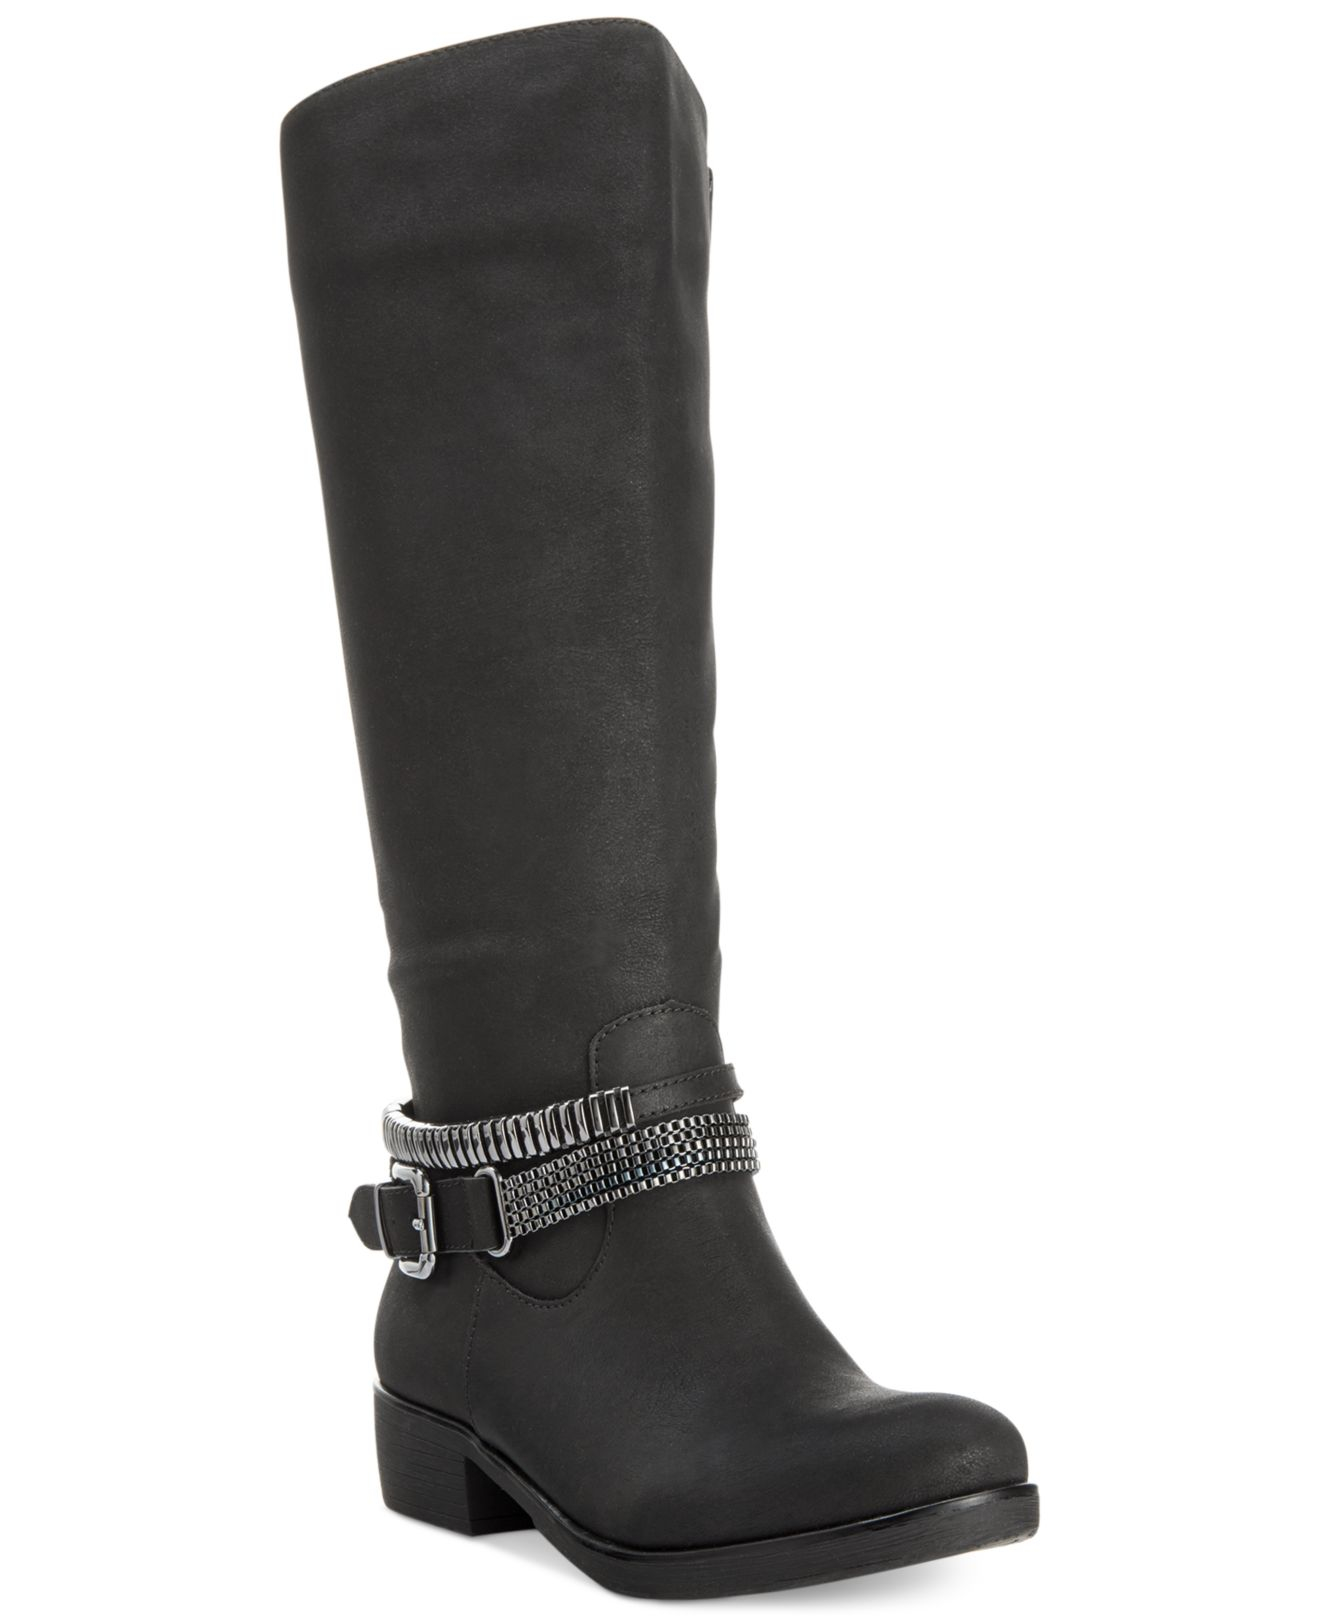 co wardd embellished moto boots only at macy s $ 100 19 from macy s us